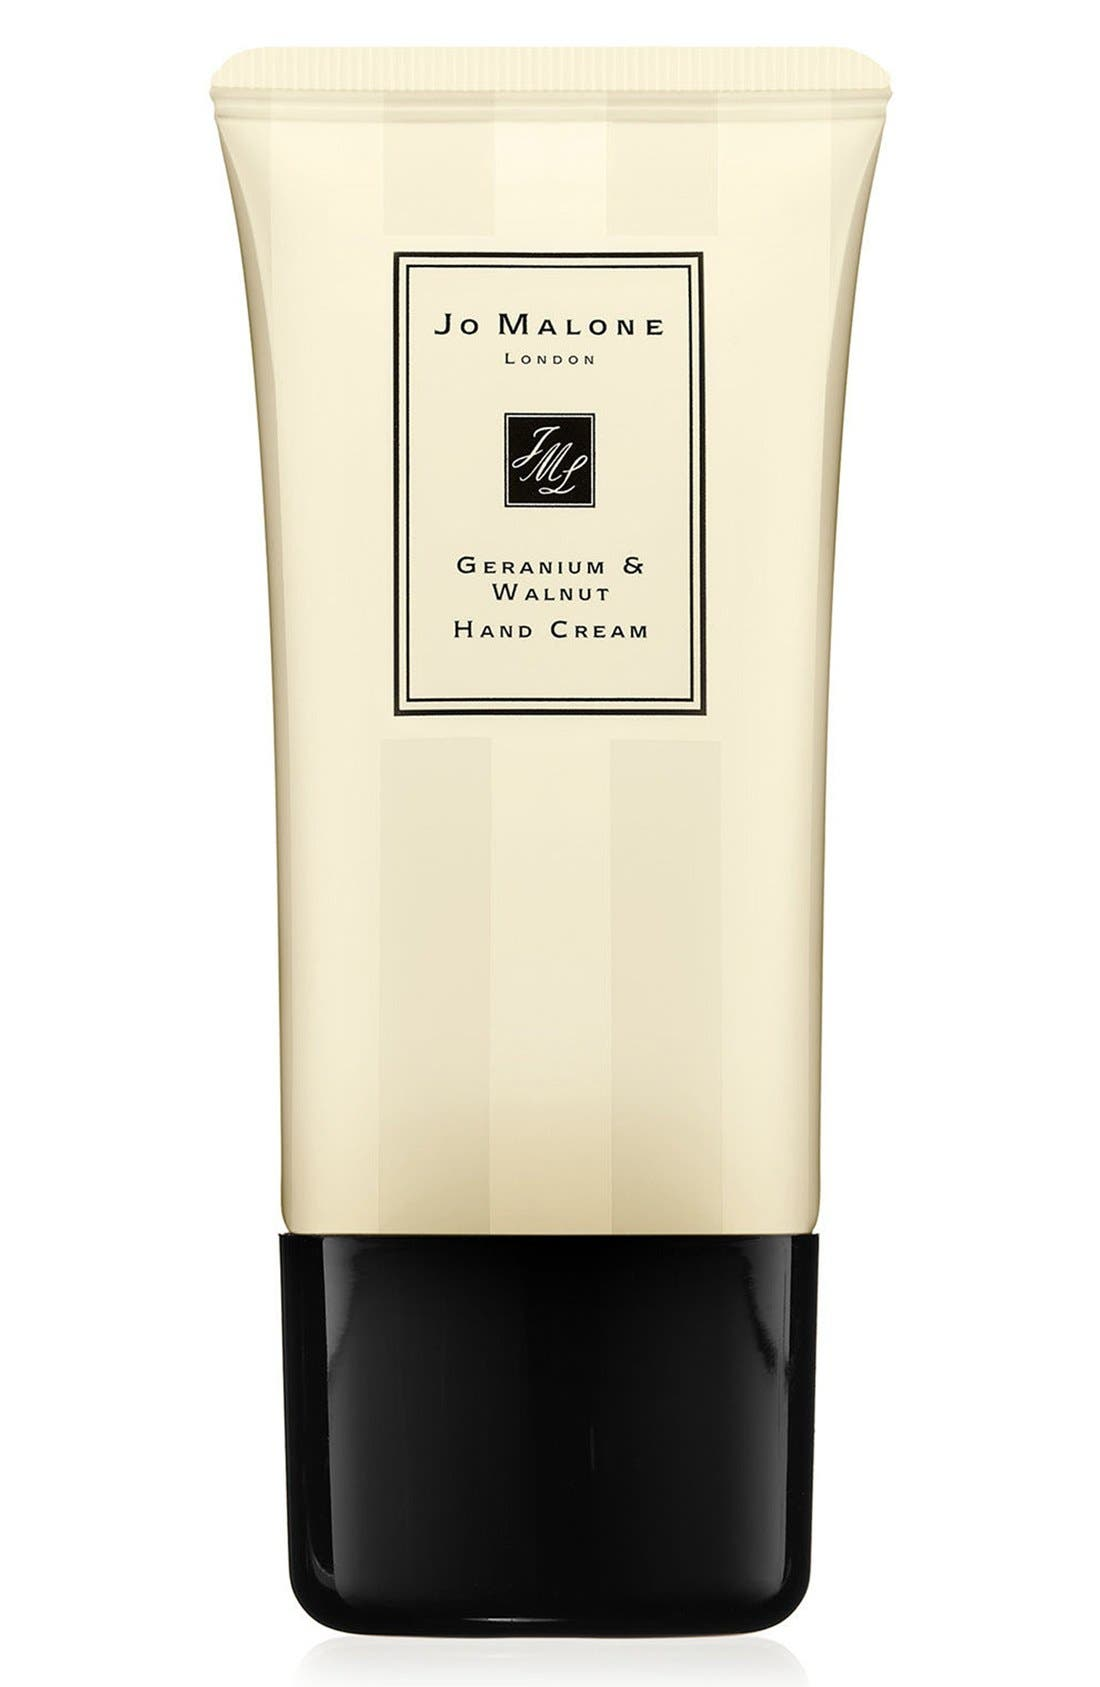 Jo Malone London™ Geranium & Walnut Hand Cream